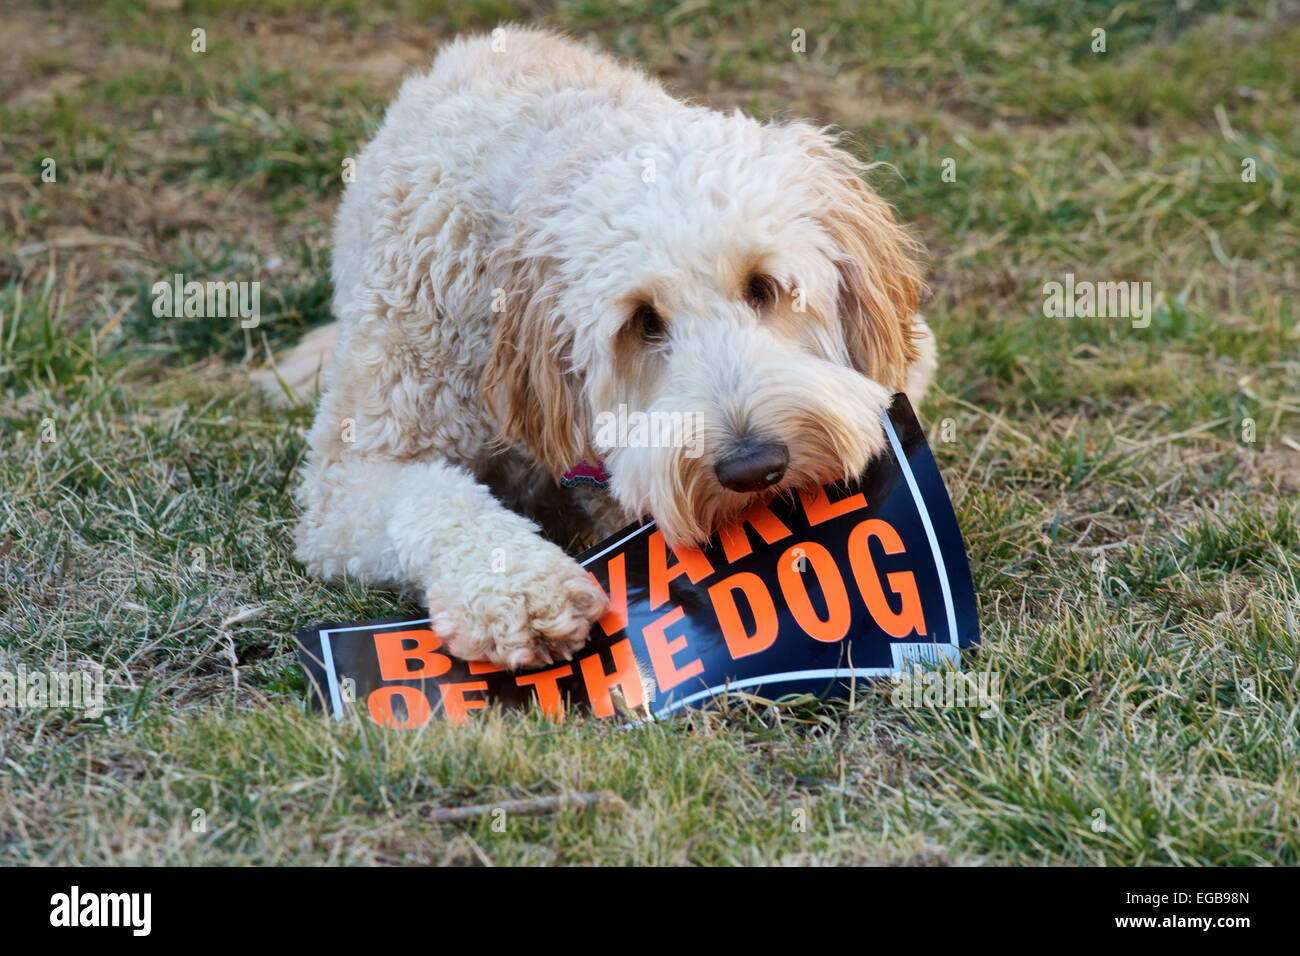 young female goldendoodle dog in backyard holding